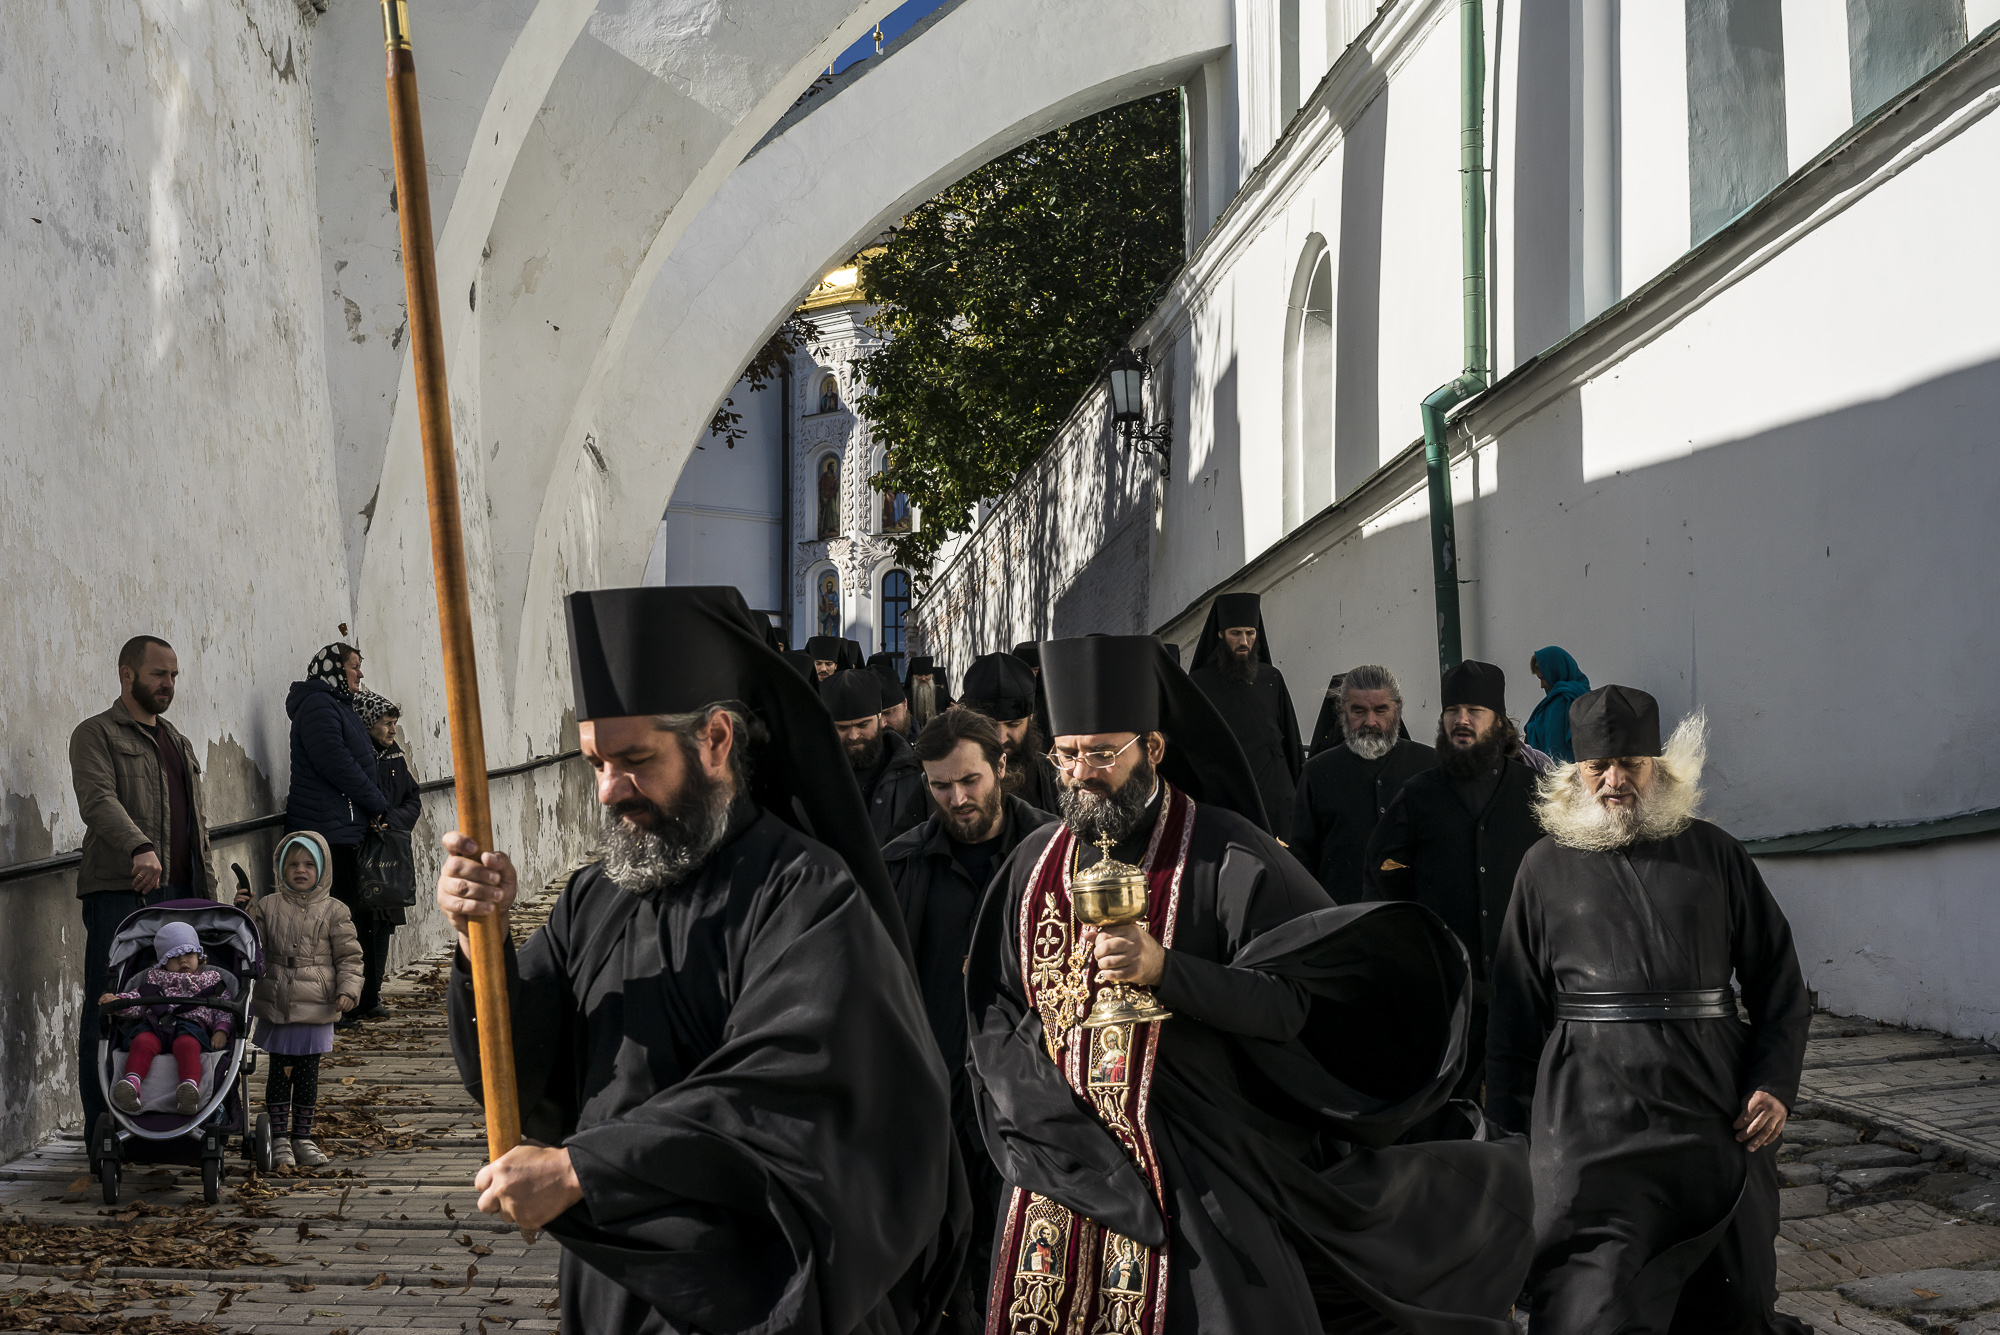 Monks process from the Refectory Church of Sts. Anthony and Theodosius to the refectory for a communal meal at the Kyiv-Pechersk Lavra on Sunday, October 7, 2018 in Kyiv, Ukraine.